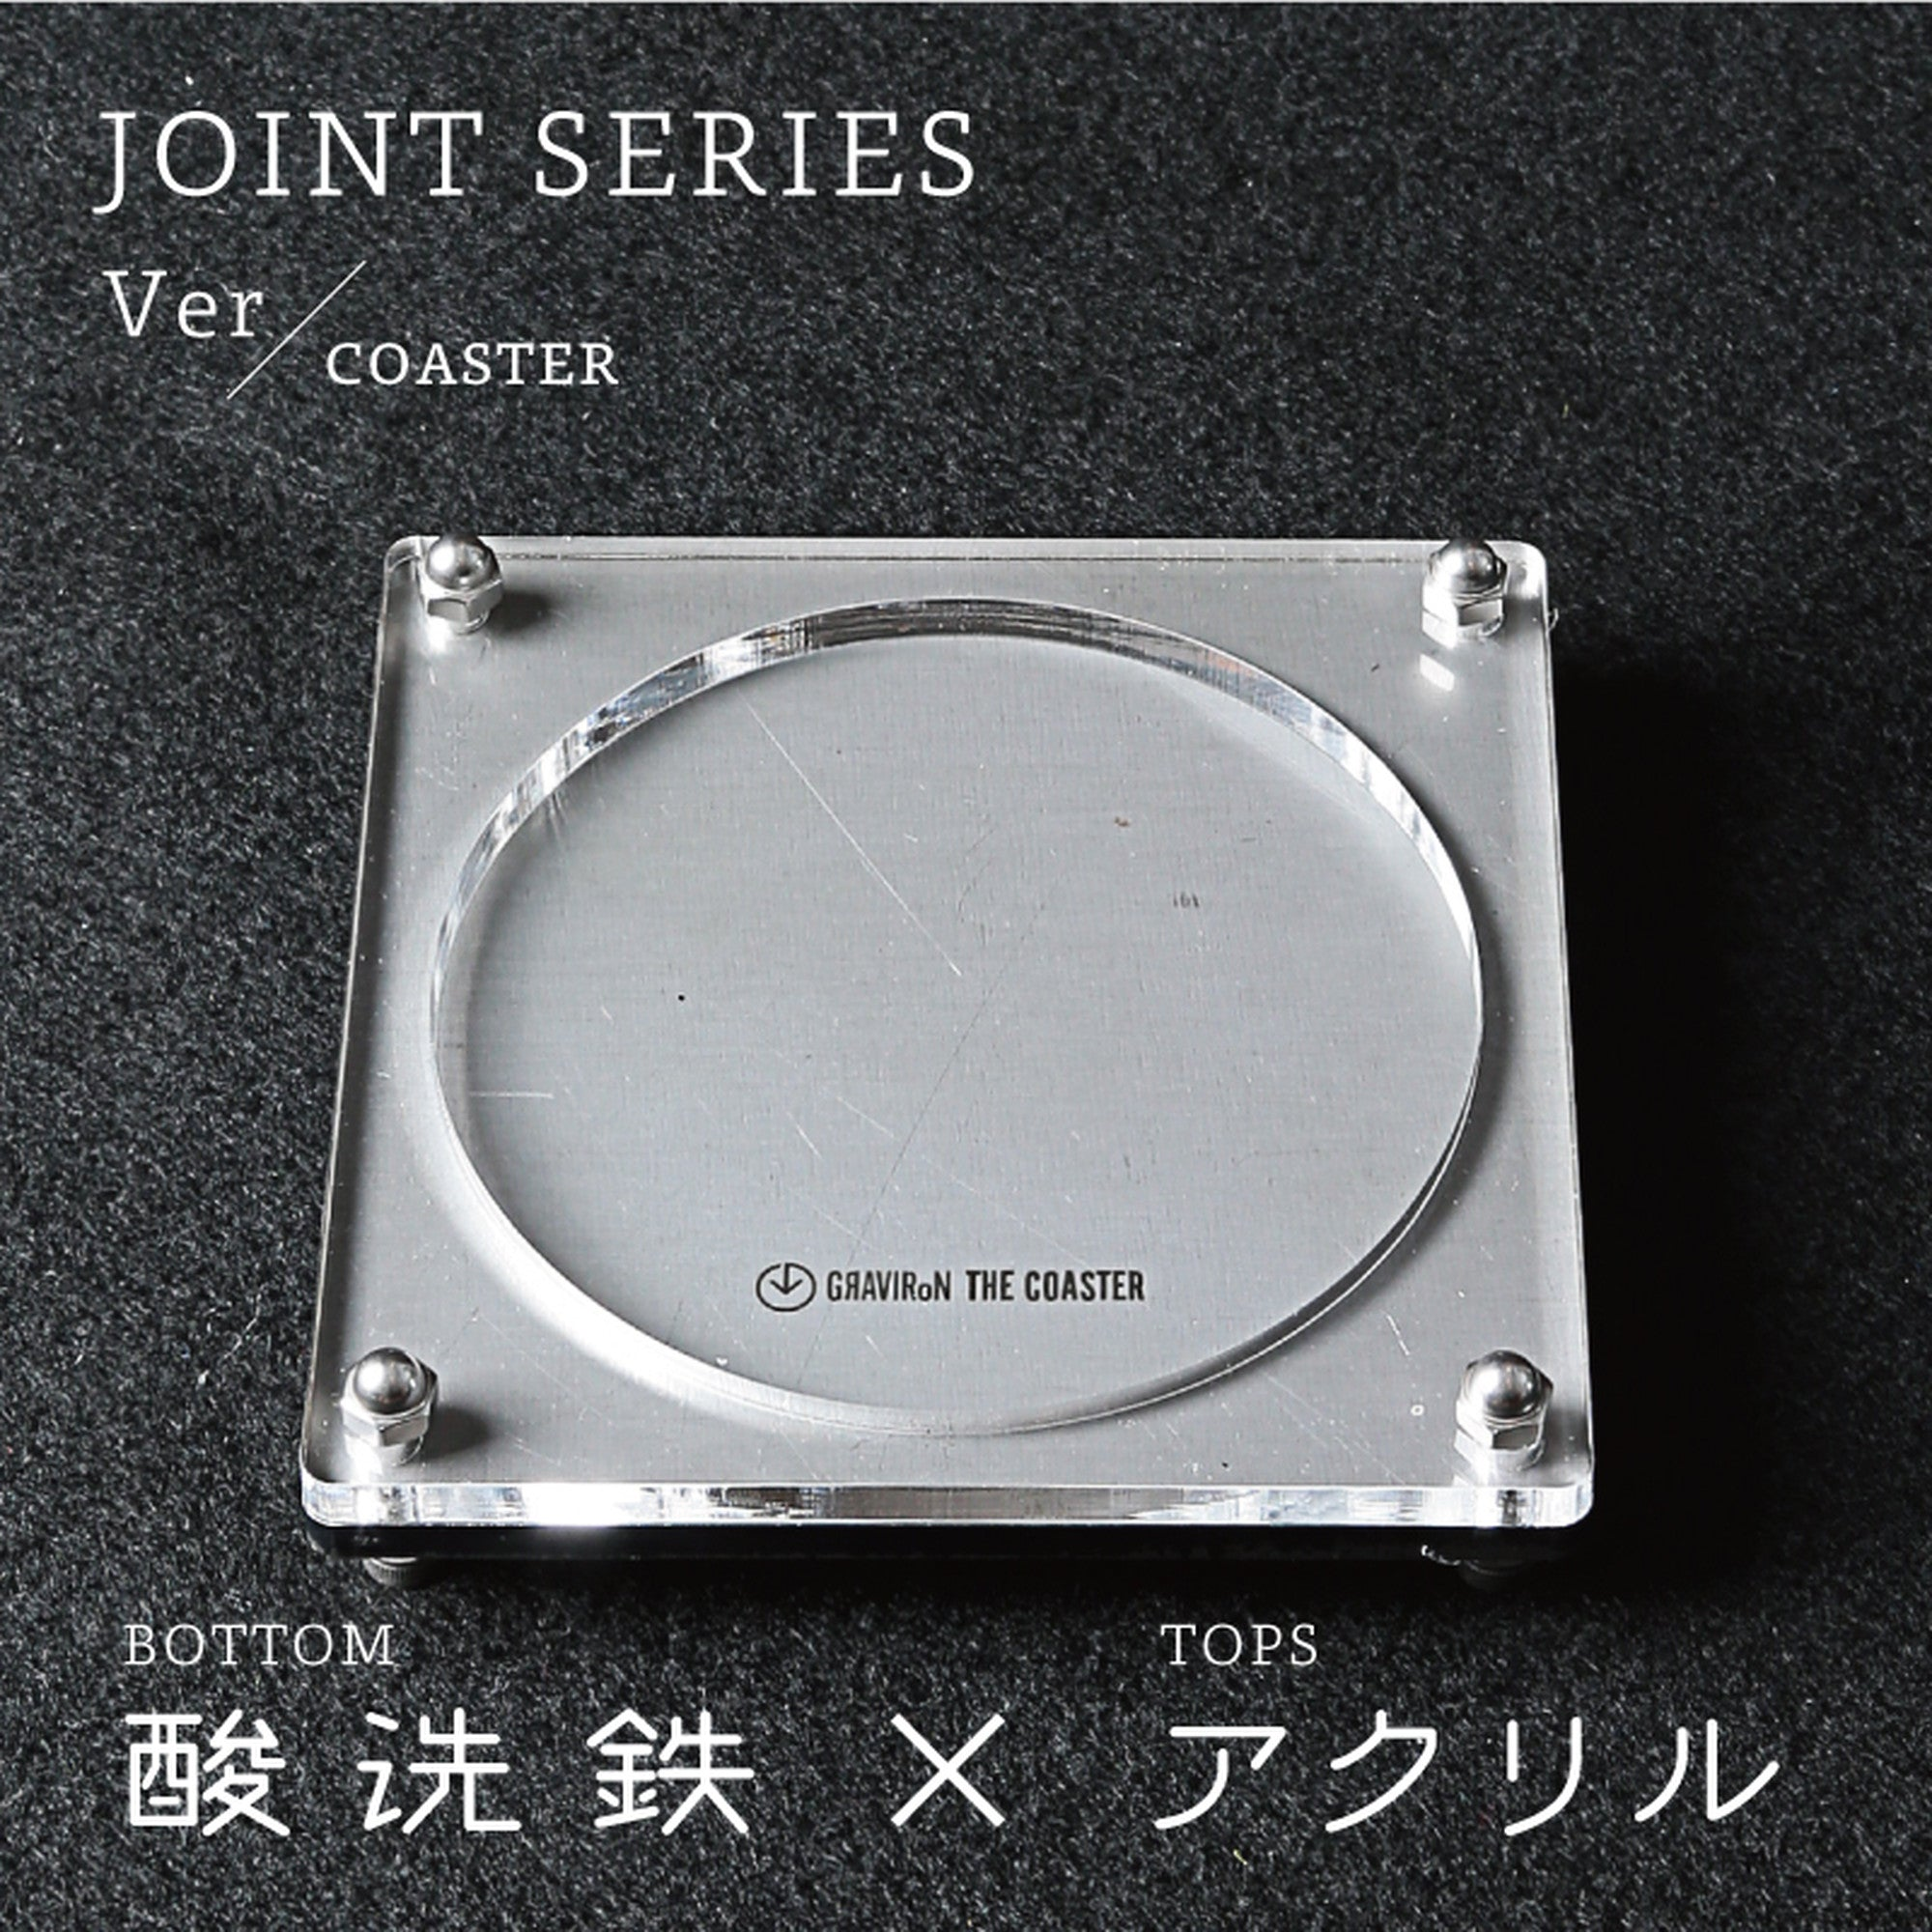 Joint Series COASTER BOTTOM:酸洗鉄、TOP:アクリル